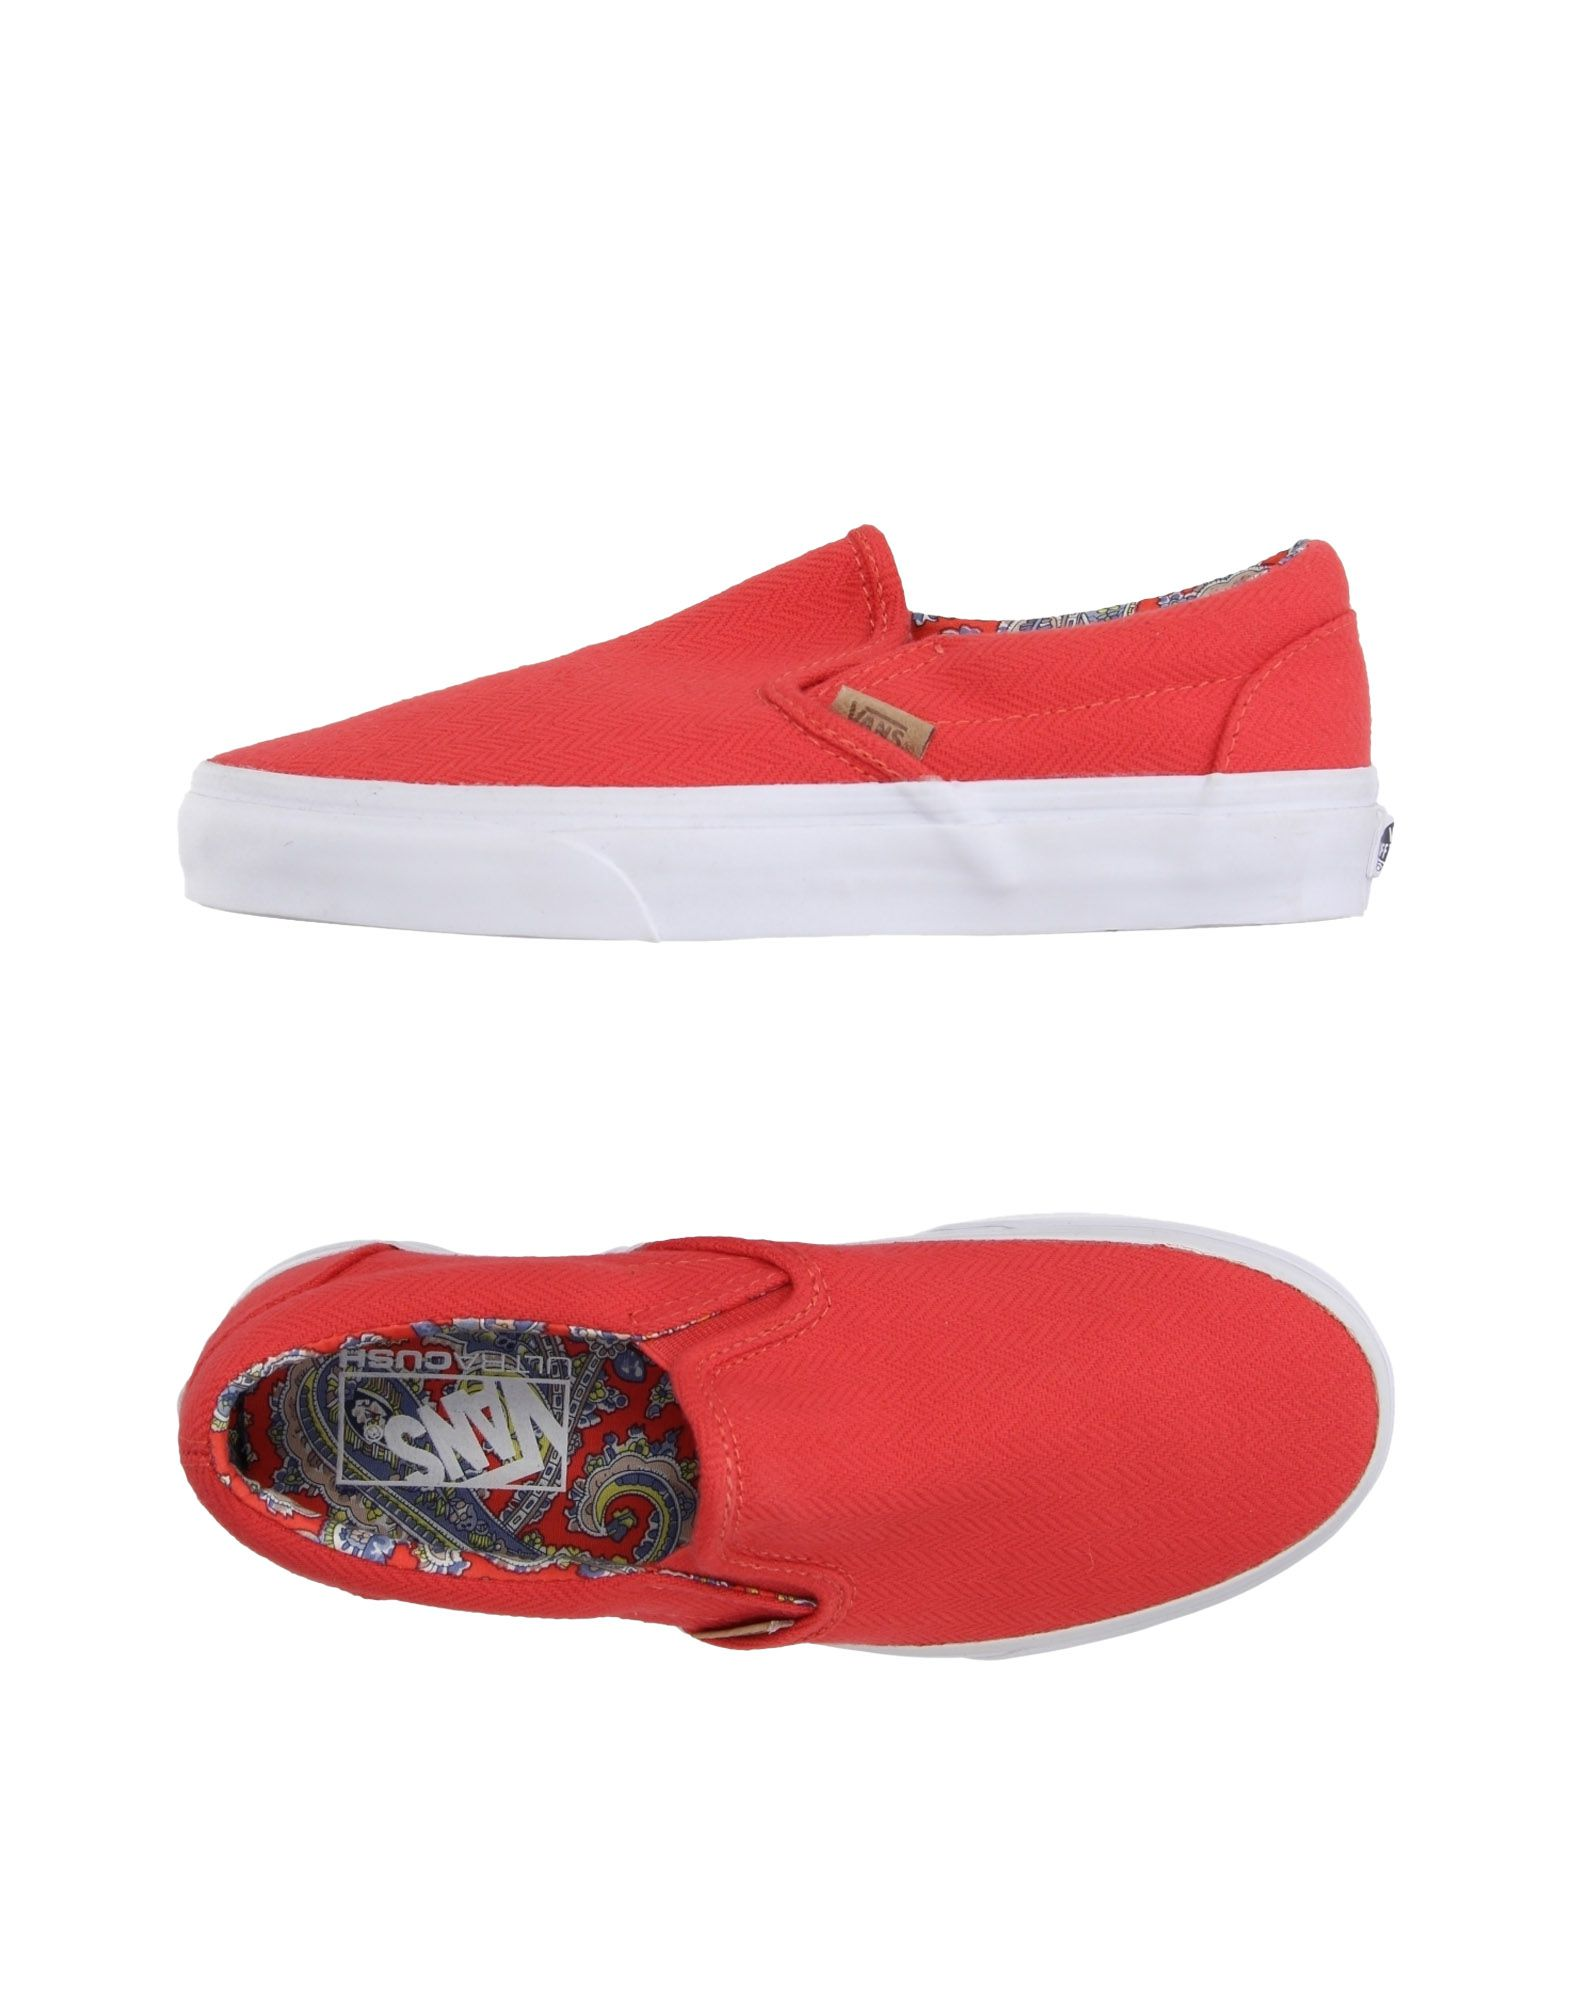 Moda Sneakers Donna Vans Donna Sneakers - 11179546KP ca53a7